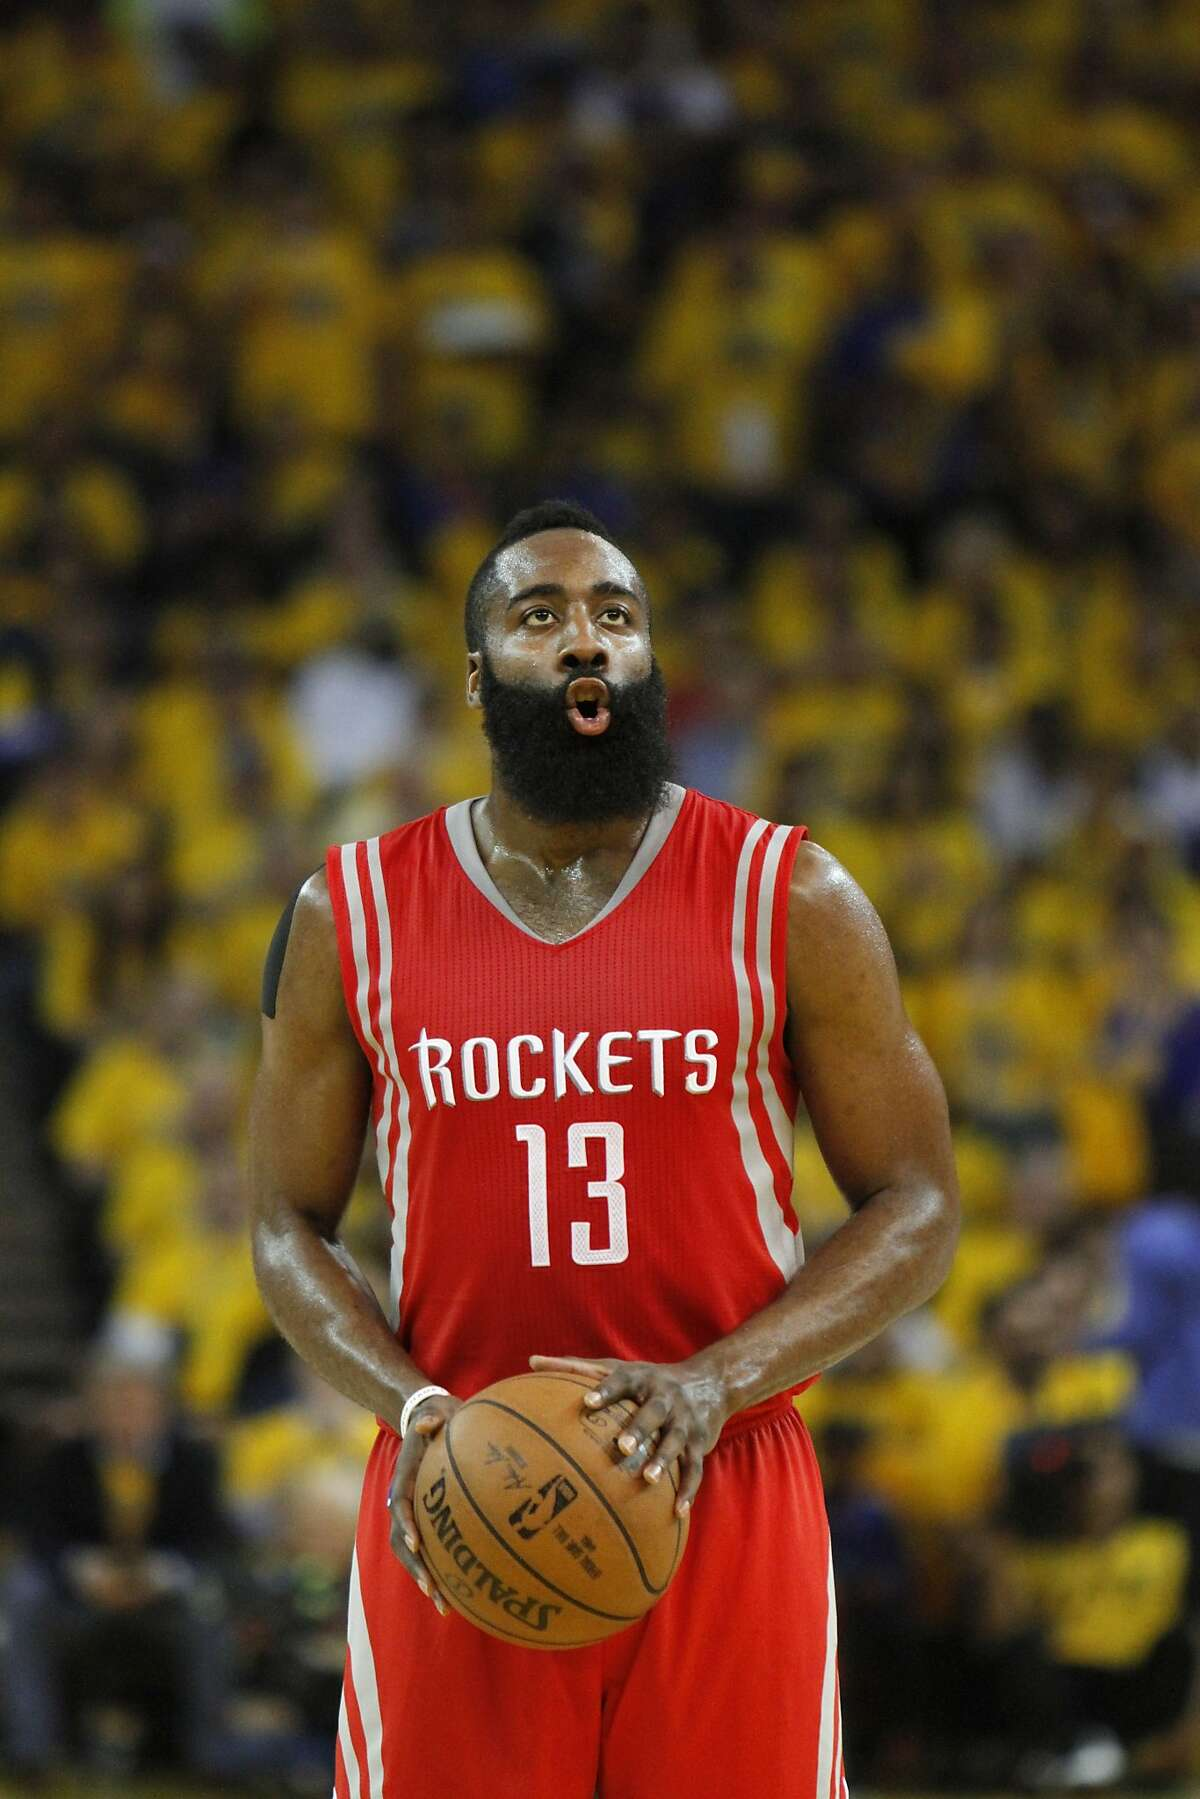 James Harden prepares for a free throw in the first quarter of game 5 on Wednesday, May 27, 2015 in Oakland, Calif.